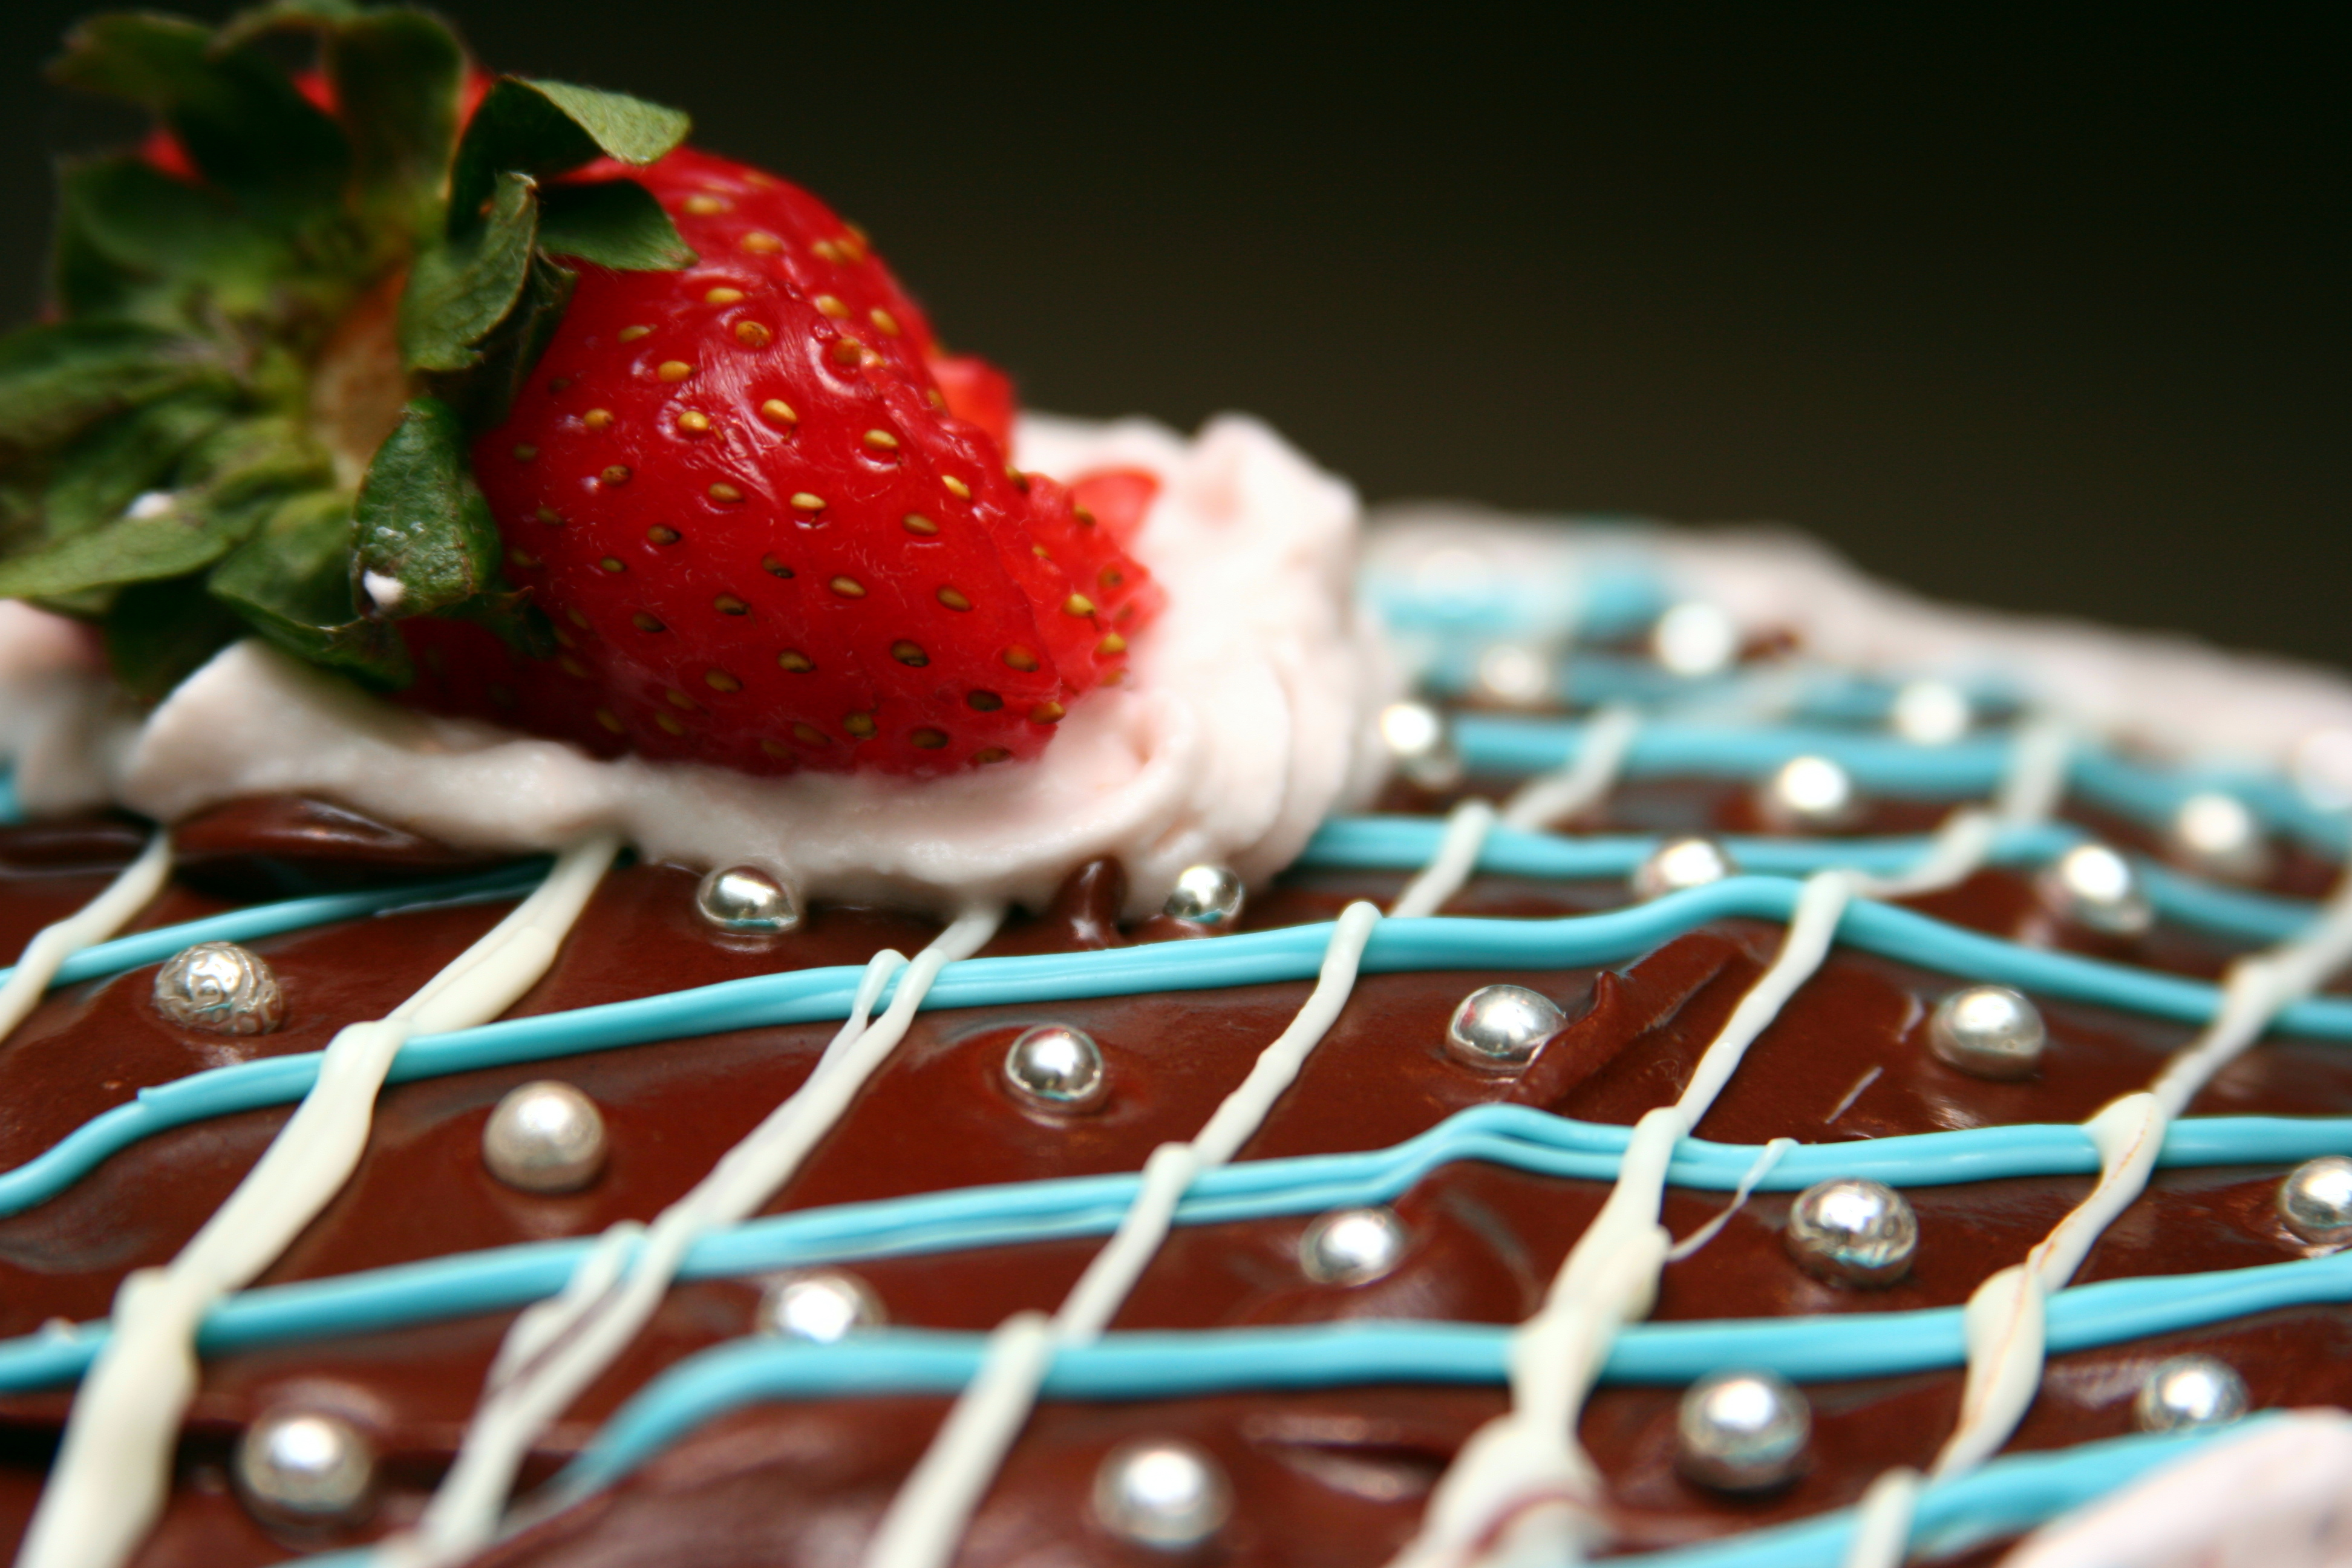 chocolatecakedecoratedwithicing,strawberries,andsilverysugarbeadsorrageetallicrages.